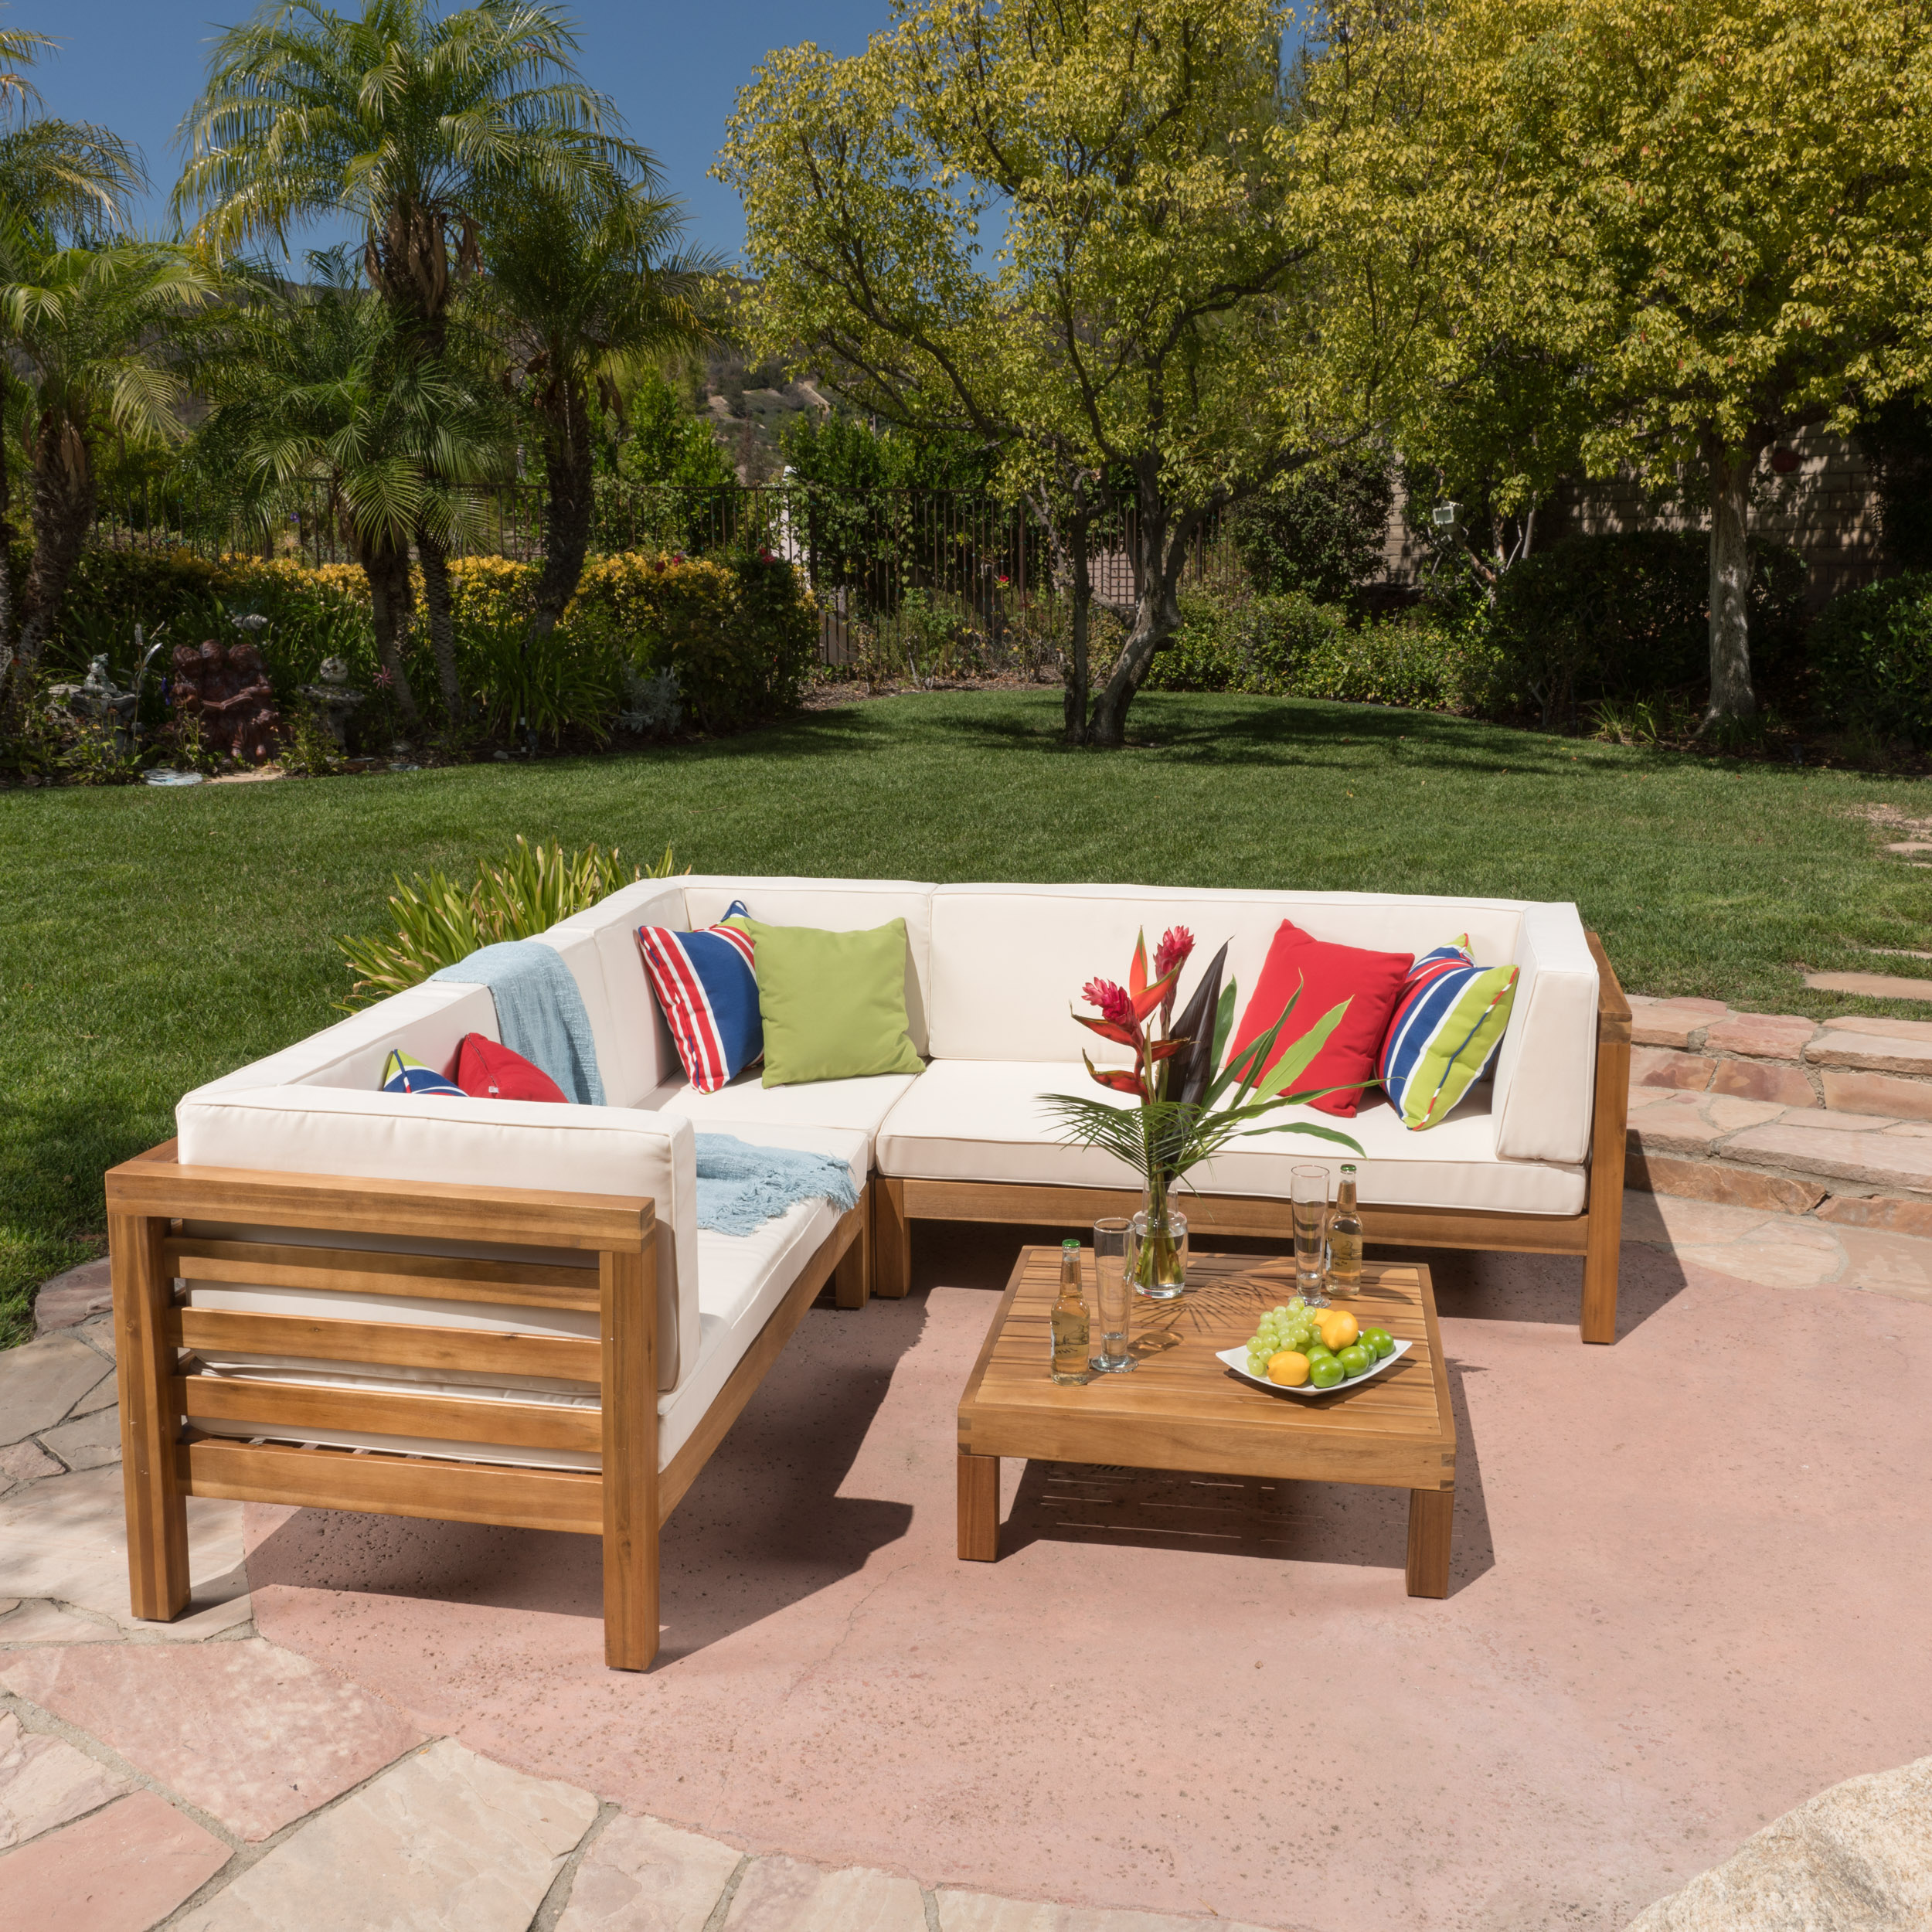 Argentine 4 Piece Outdoor Wooden Sectional Set with Cushions, Teak Finish, Beige